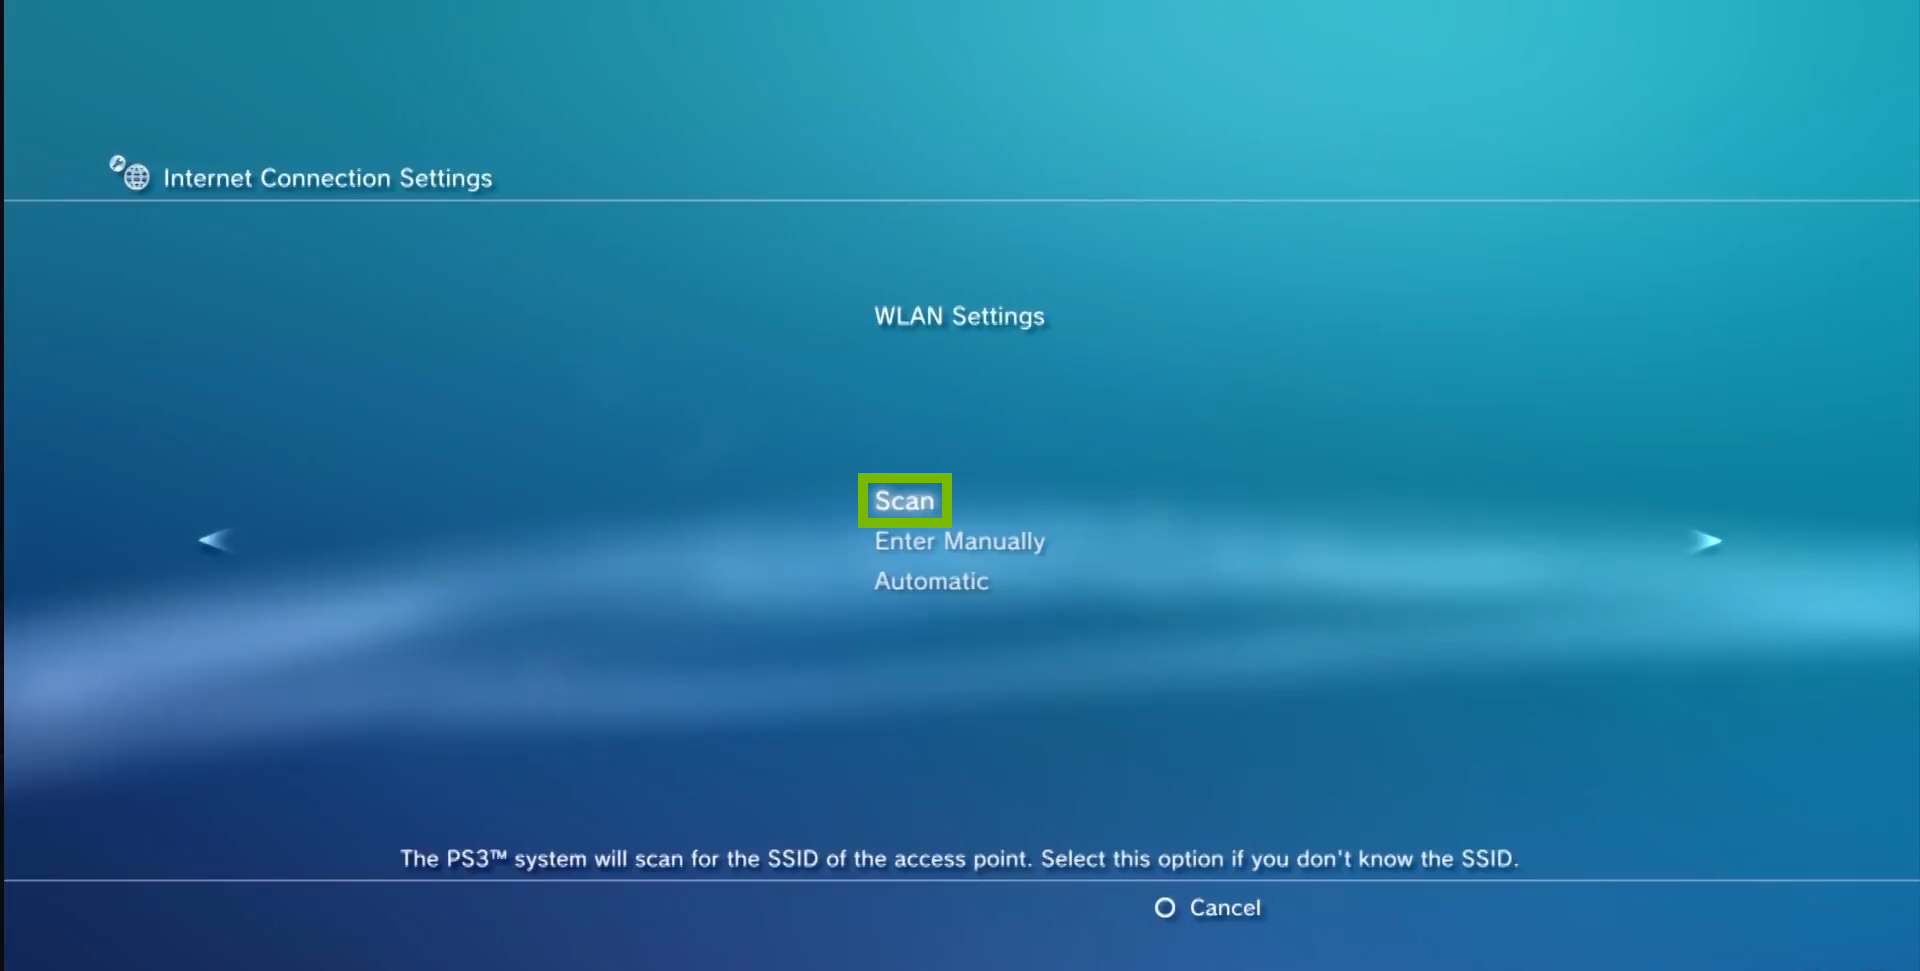 wlan settings with scan highlighted